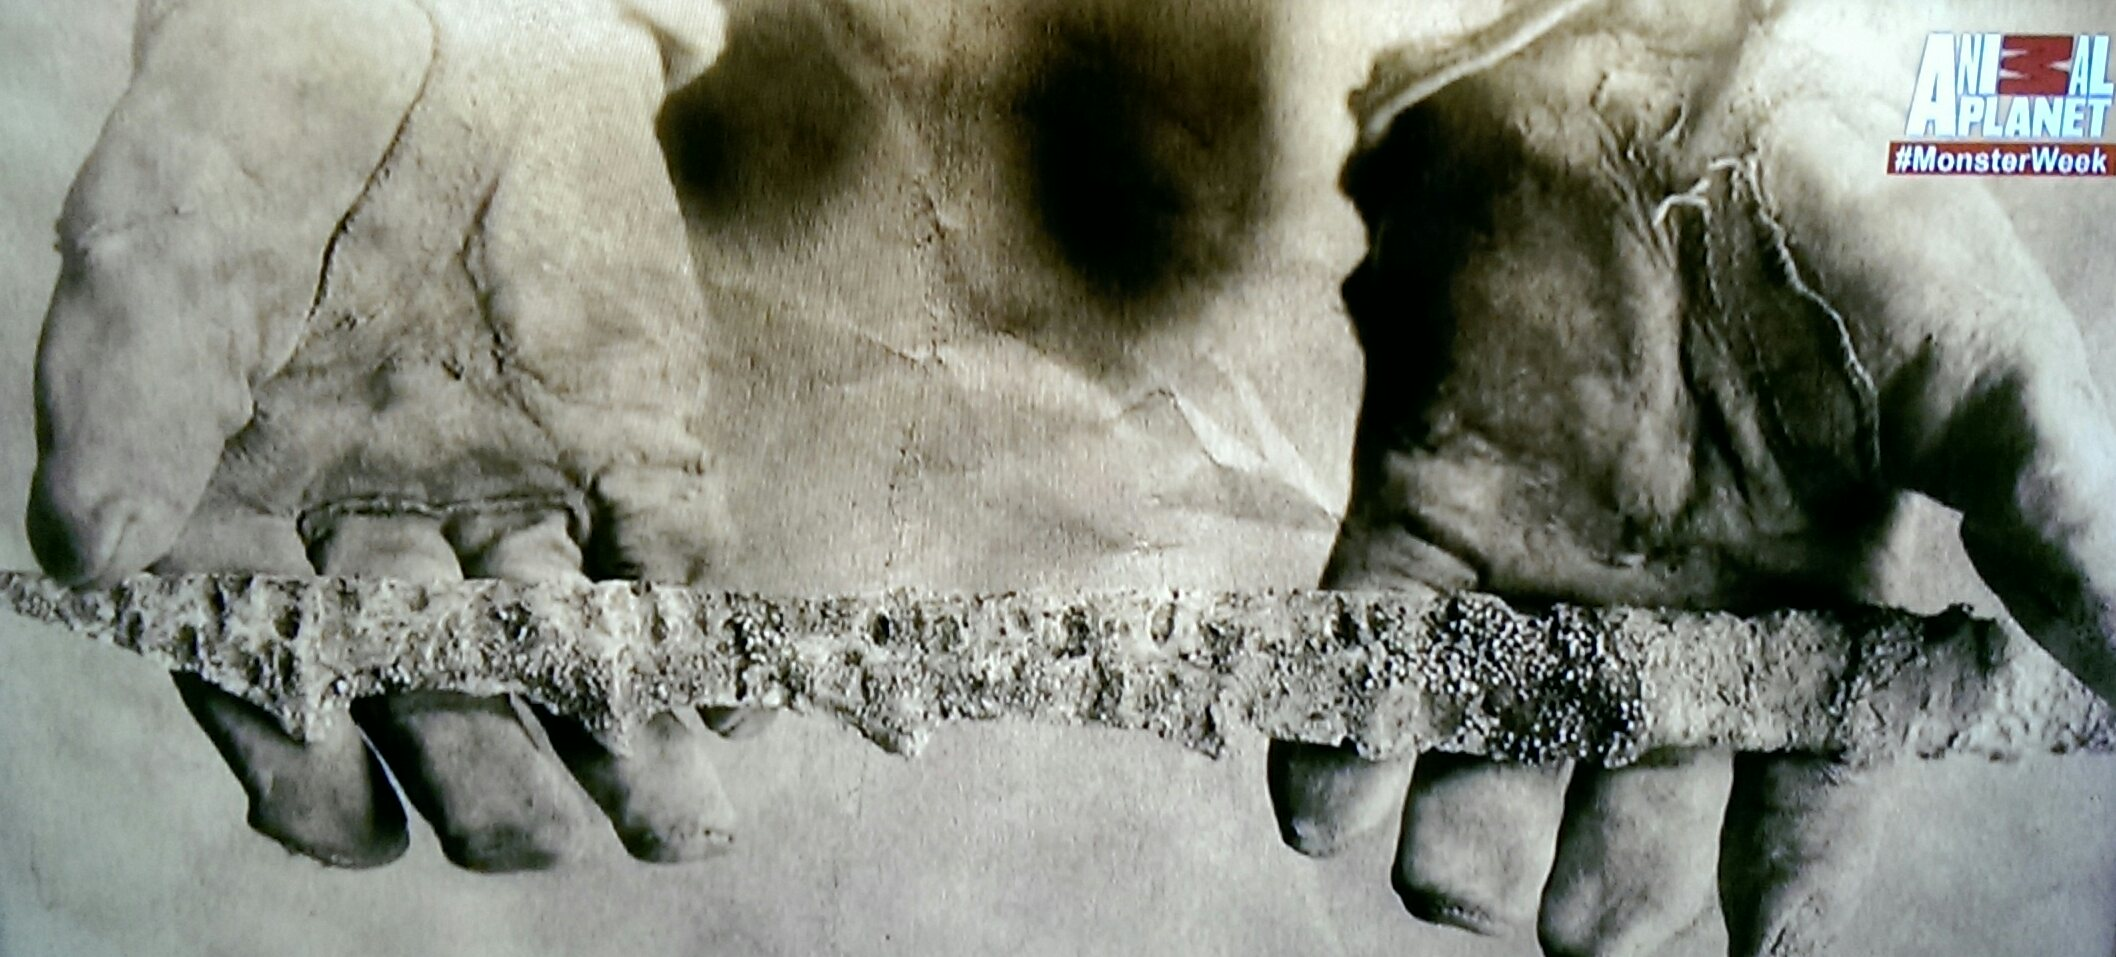 Image of a mermaid spear from the documentary Mermaids: The Body Found